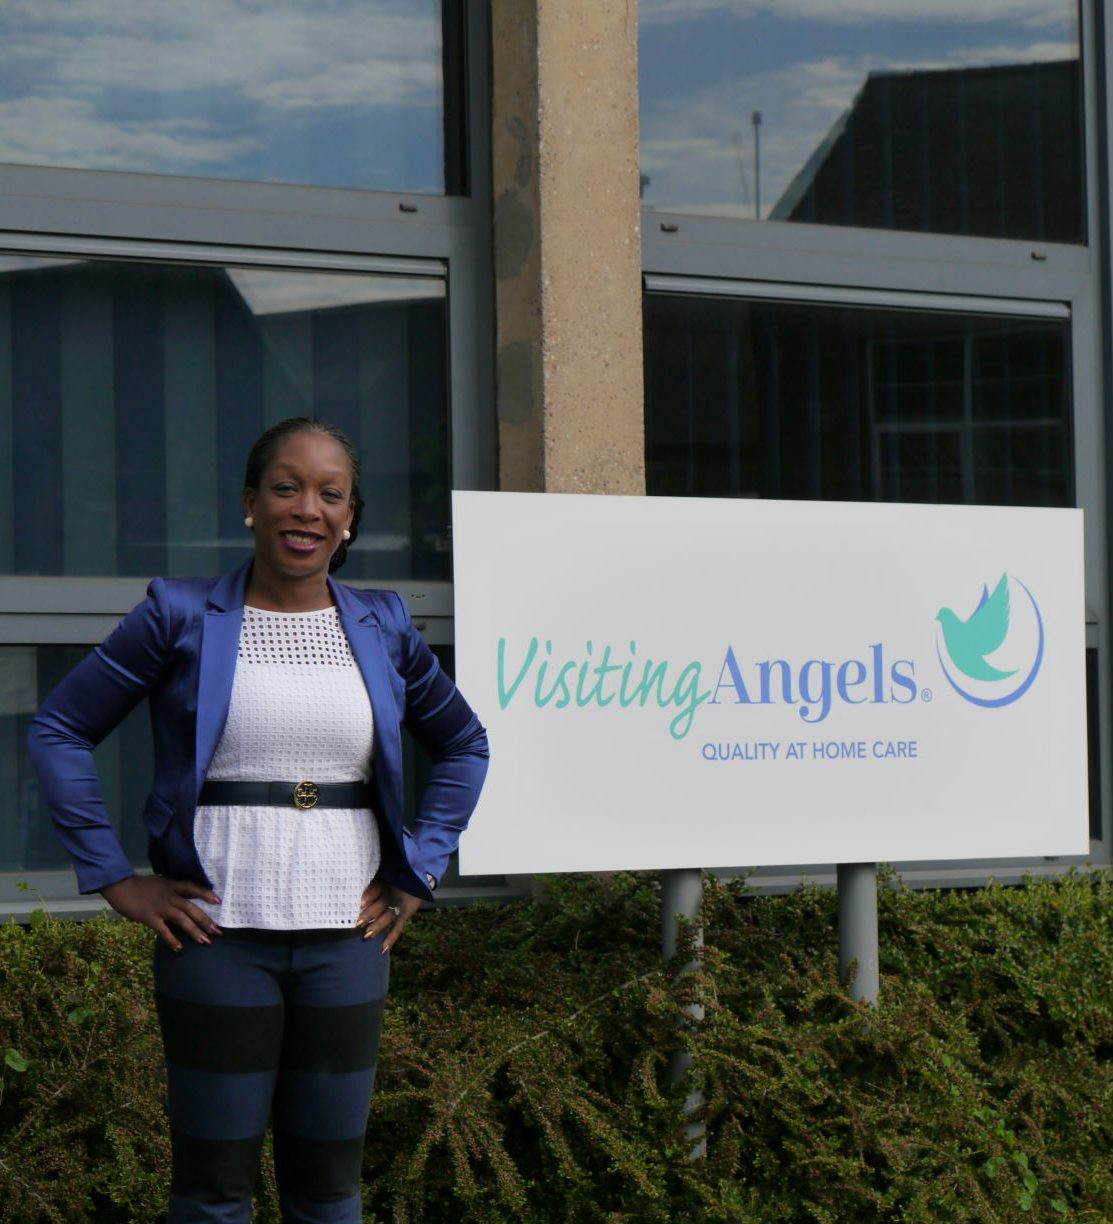 Visiting Angels Company Signage